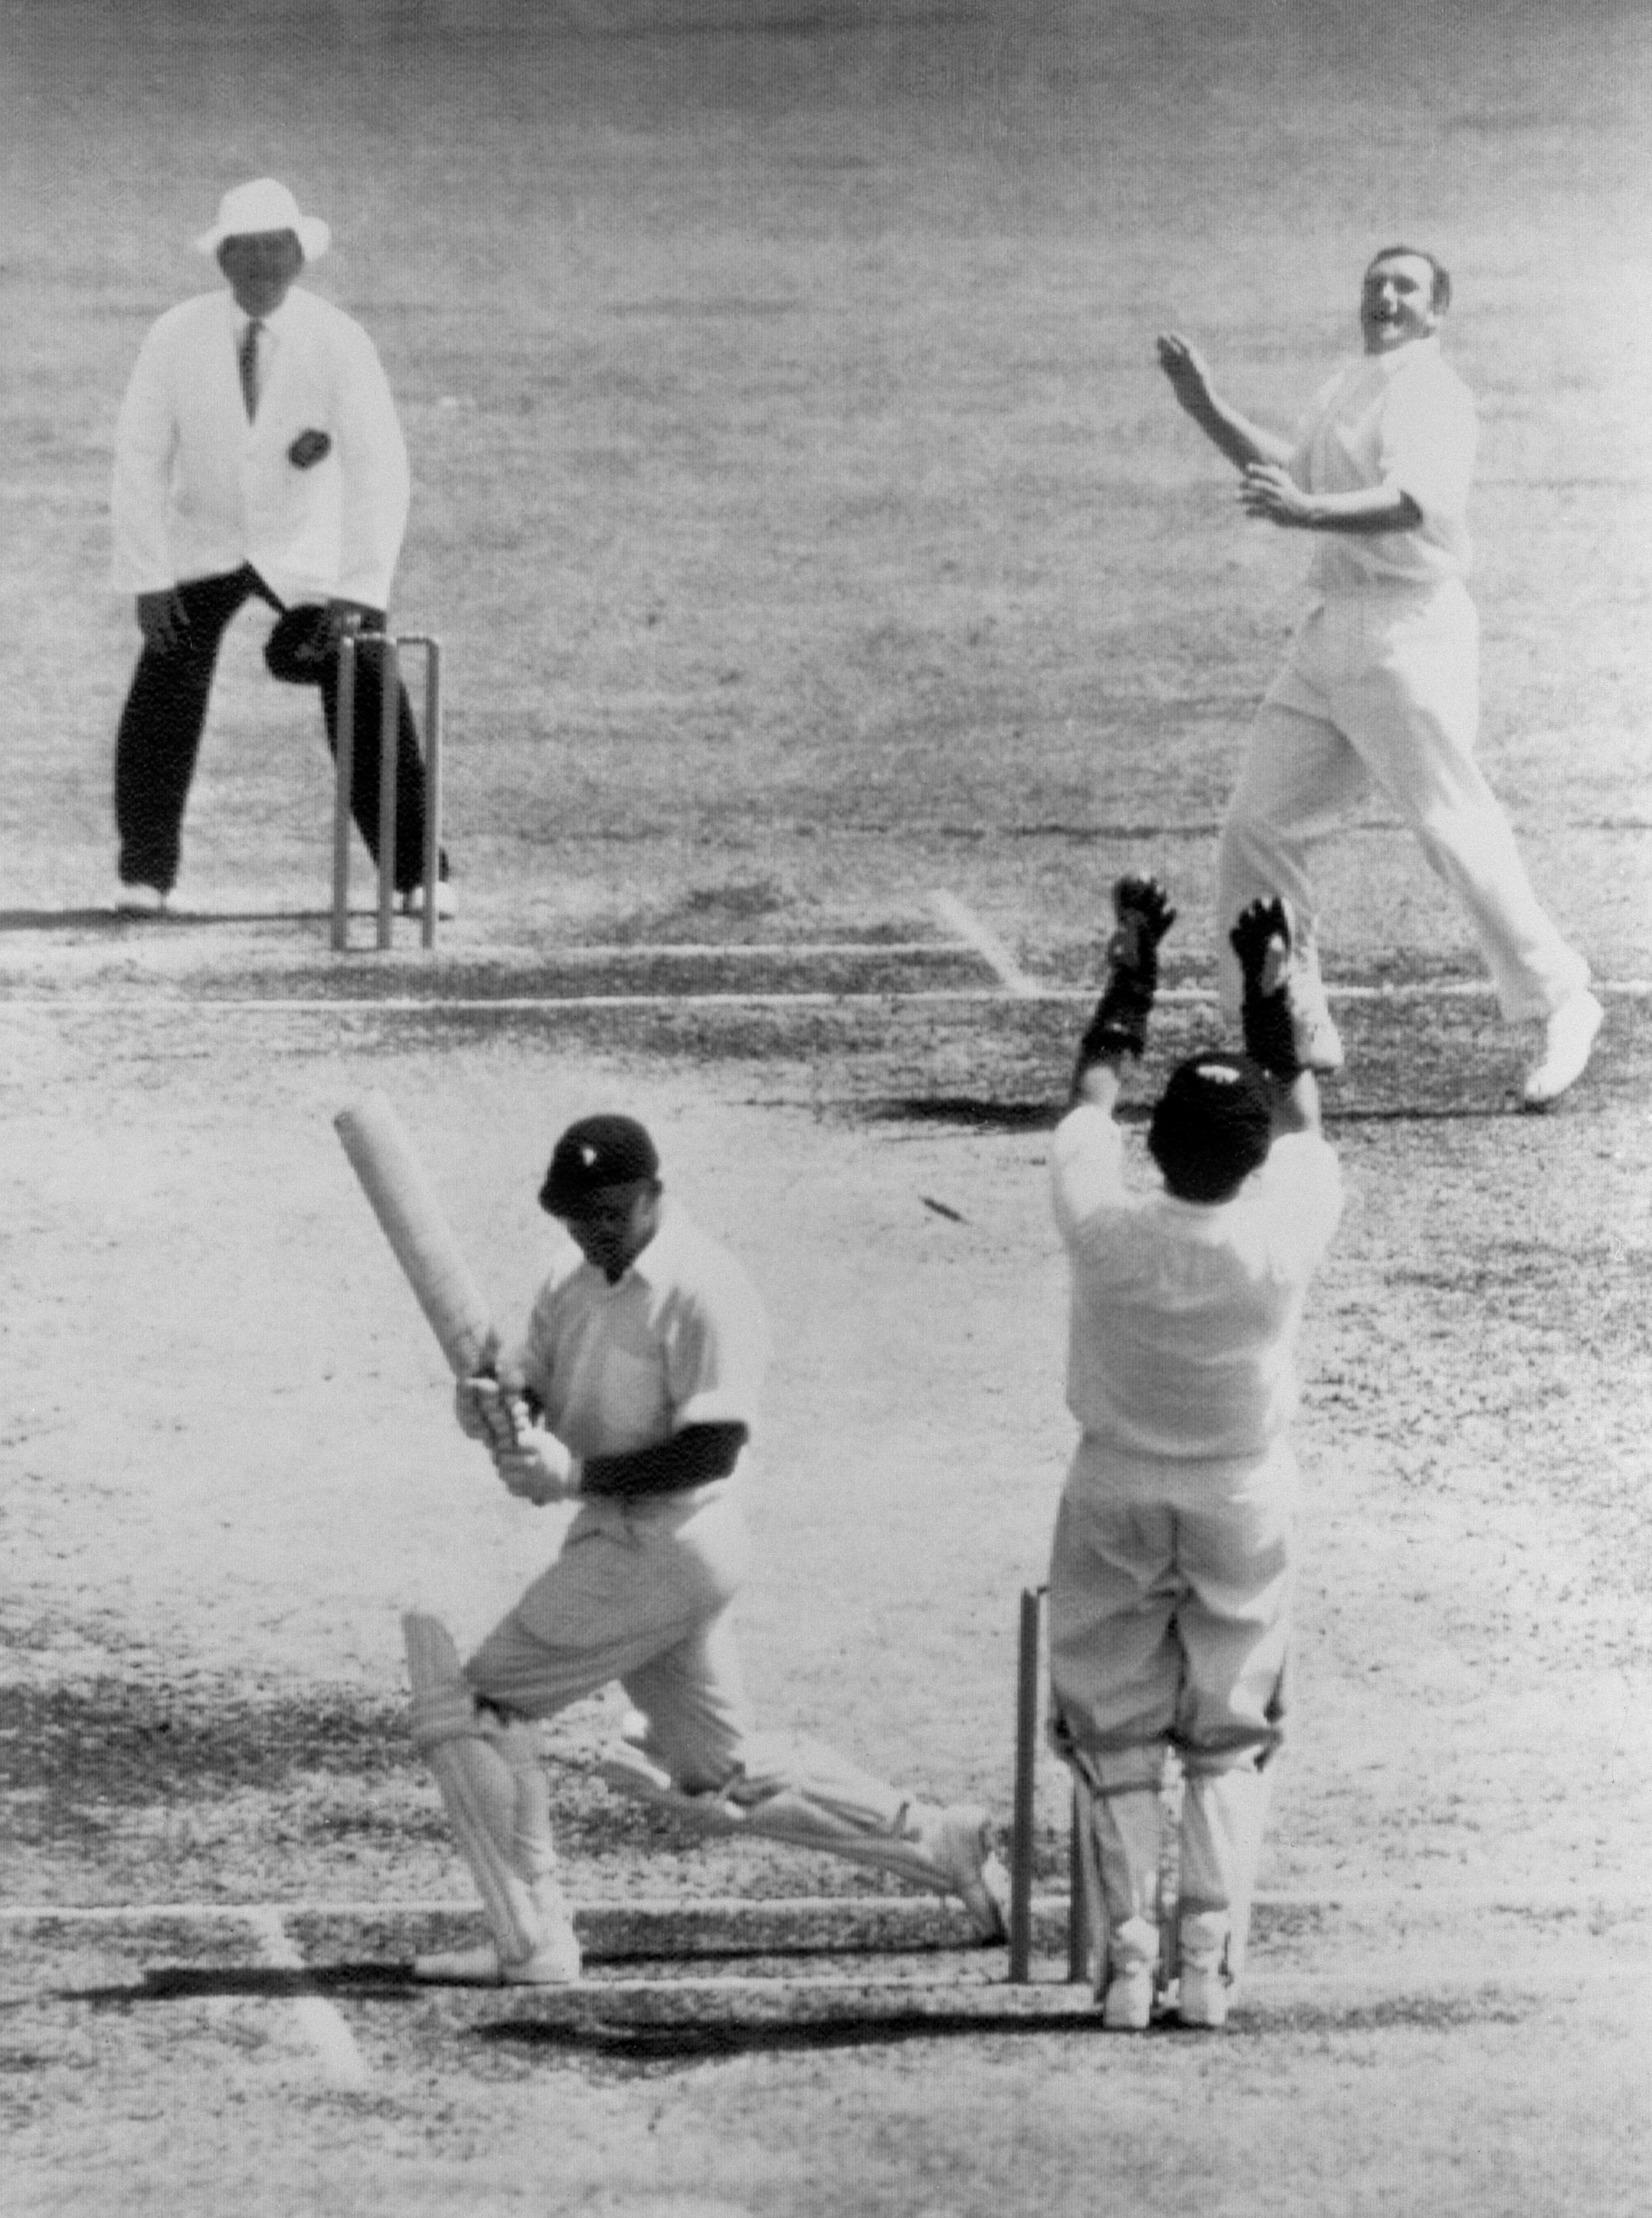 Wally Grout celebrates behind the stumps after Richie Benaud clean bowled South Africa's Eddie Barlow. PA photo